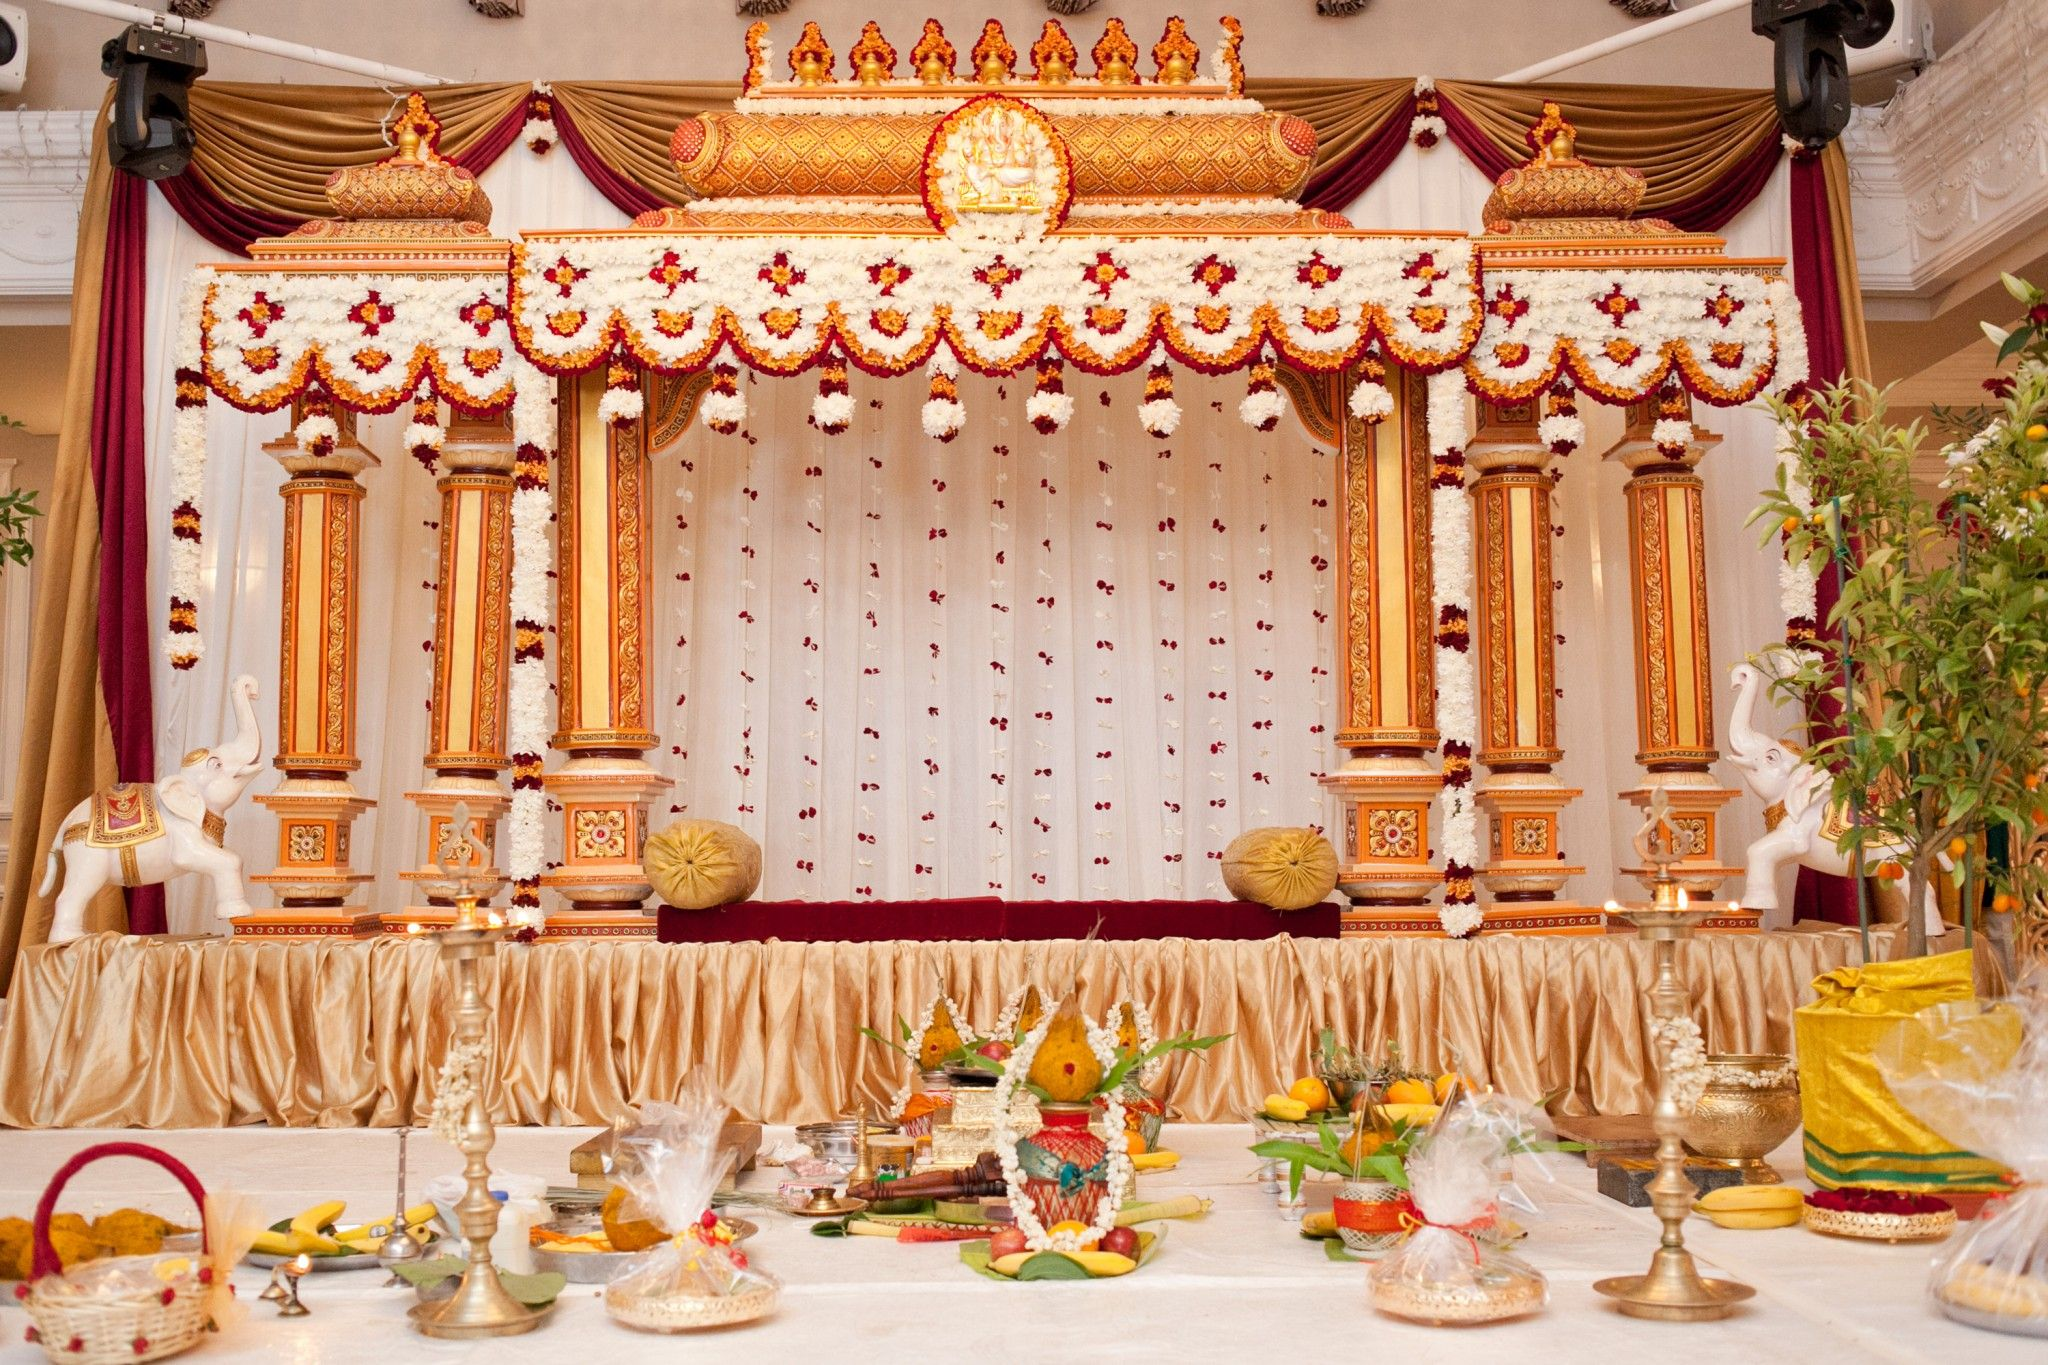 wedding tamil hindu manavarai designs - Google Search ...